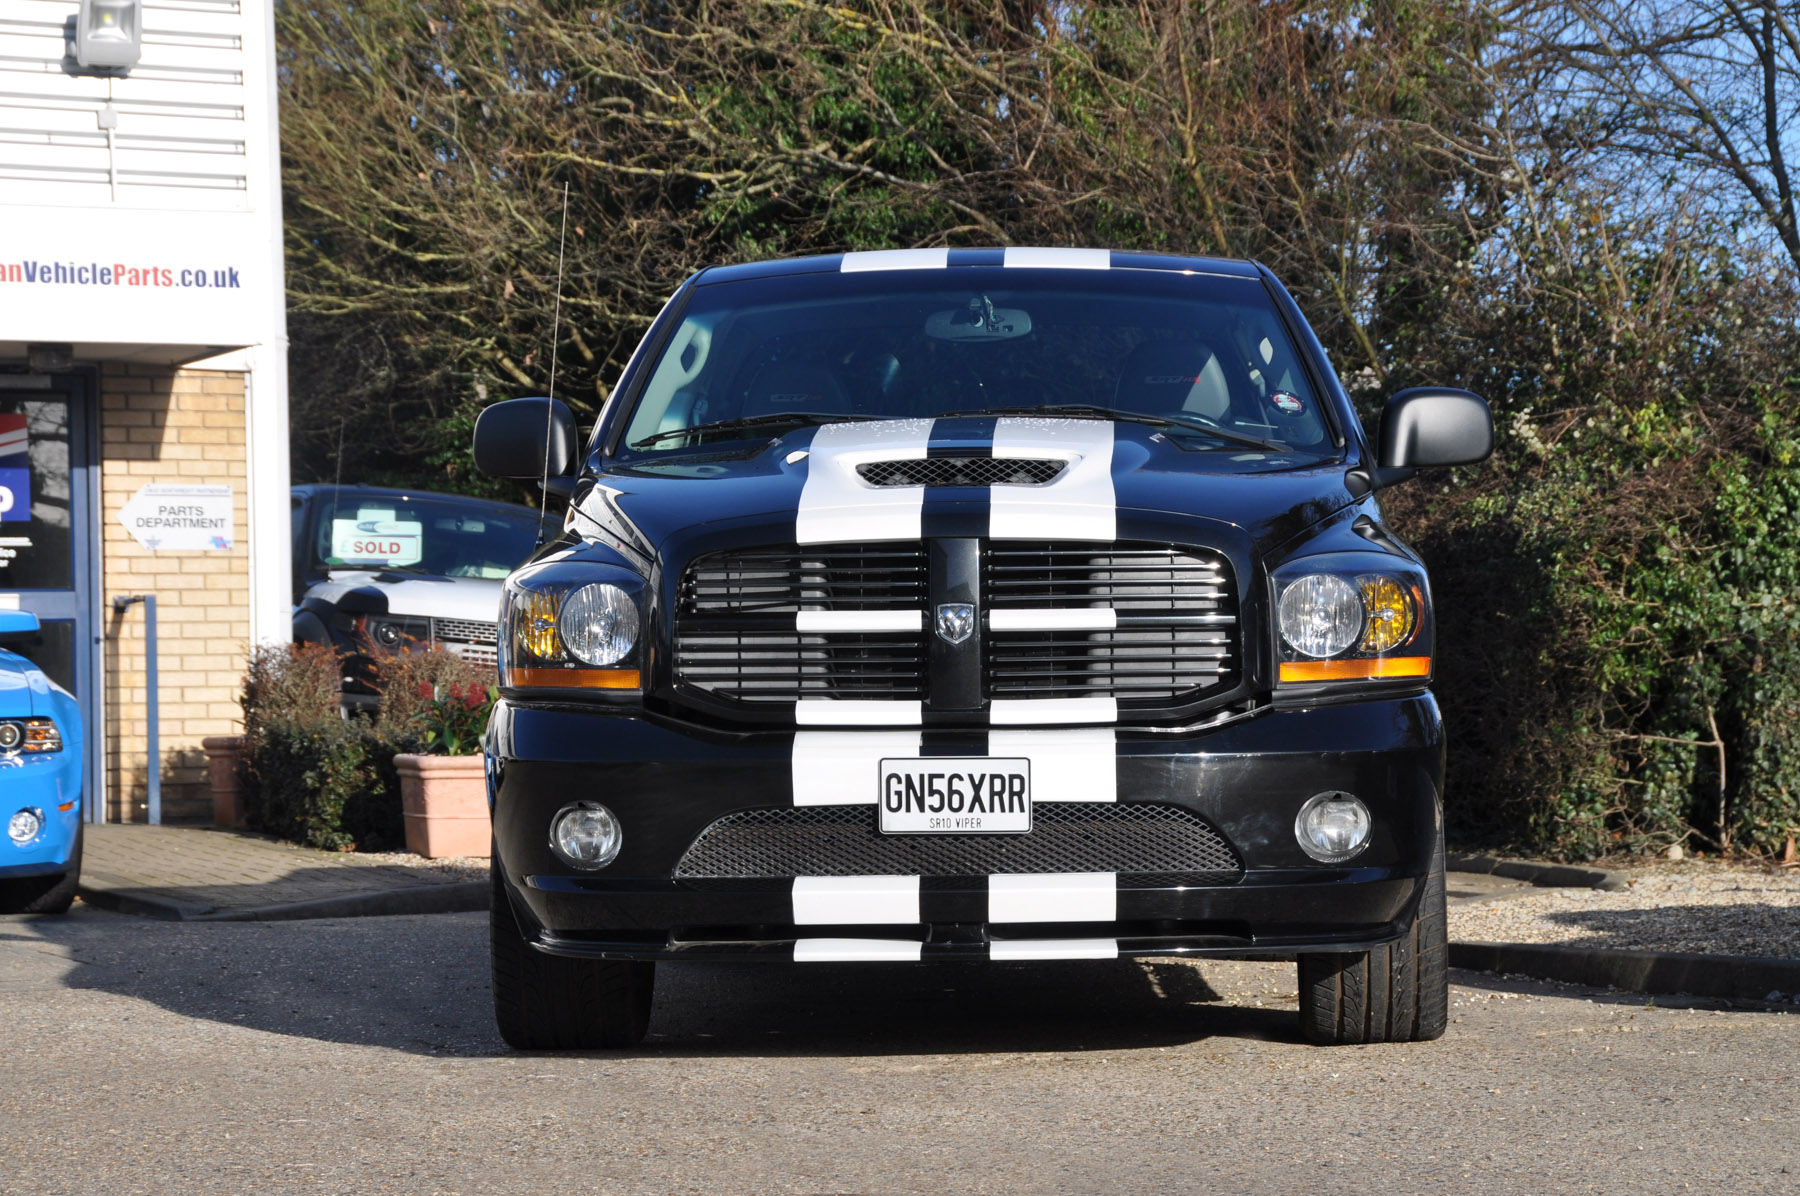 Srt10 For Sale >> 2006 (56) Dodge Ram SRT10 Nightrunner Quad Cab – NO VAT – David Boatwright Partnership ...